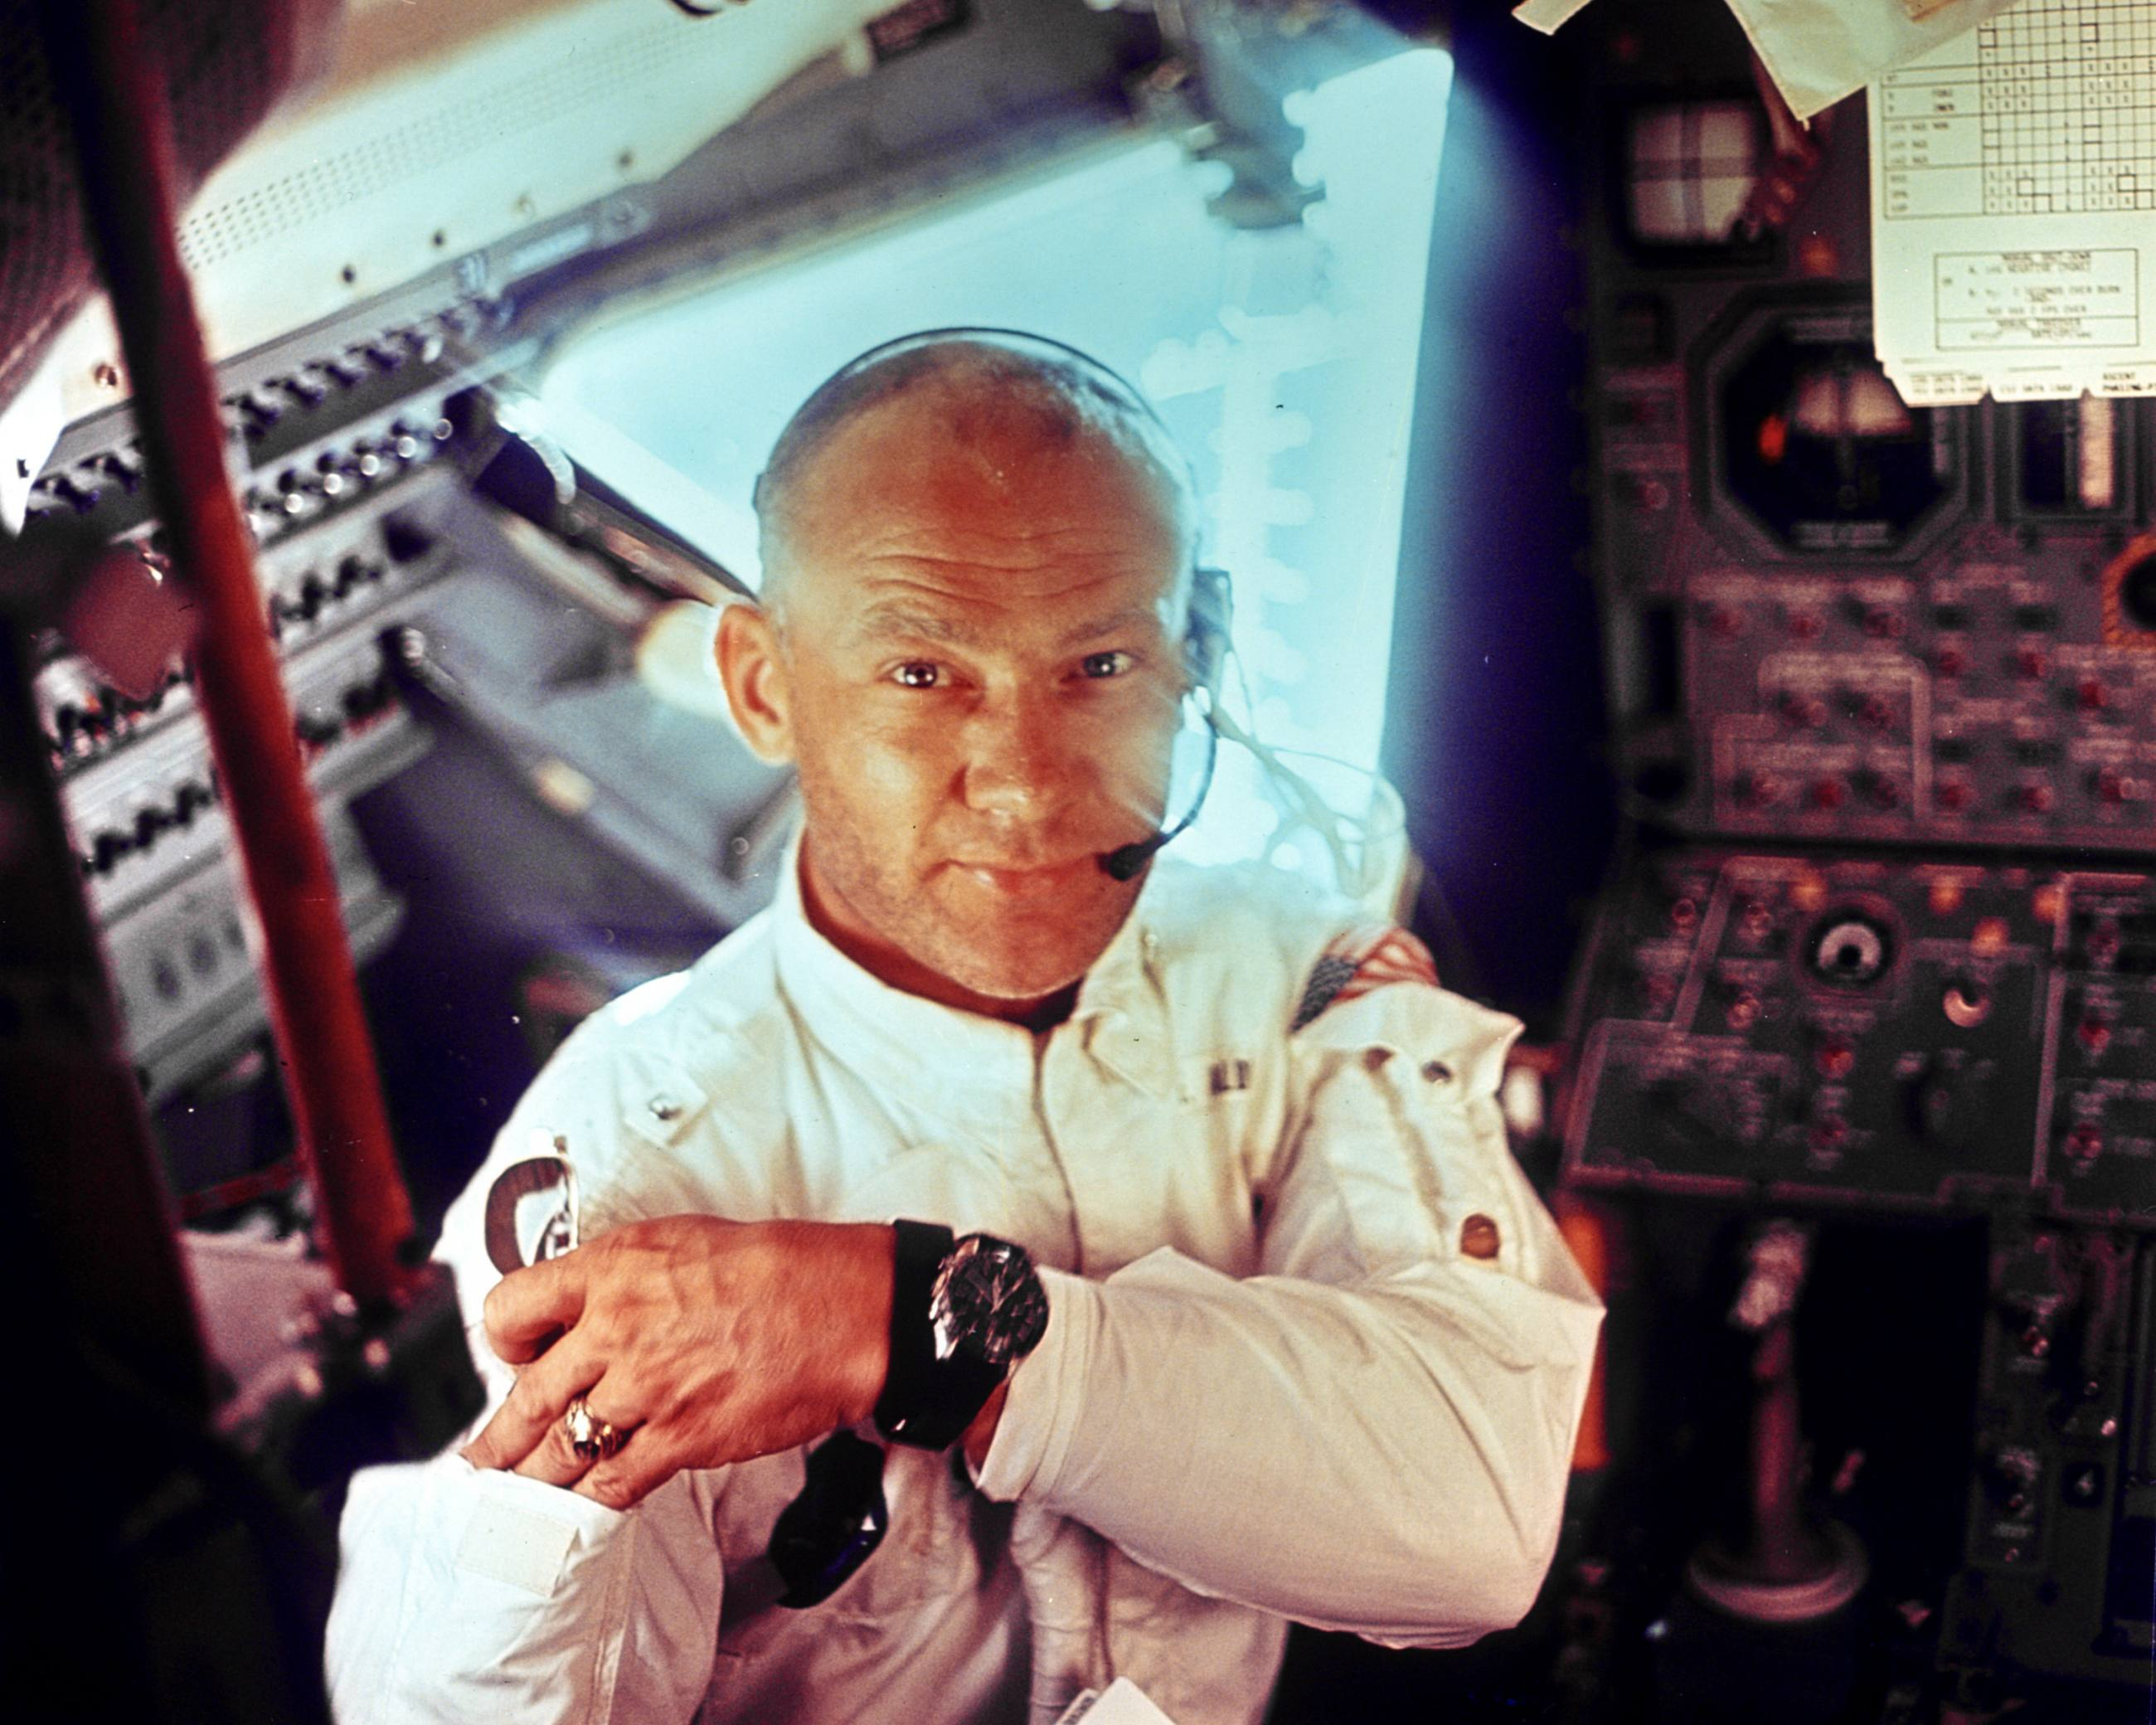 Buzz Aldrin in the Apollo 11 Lunar Module on July 20, 1969